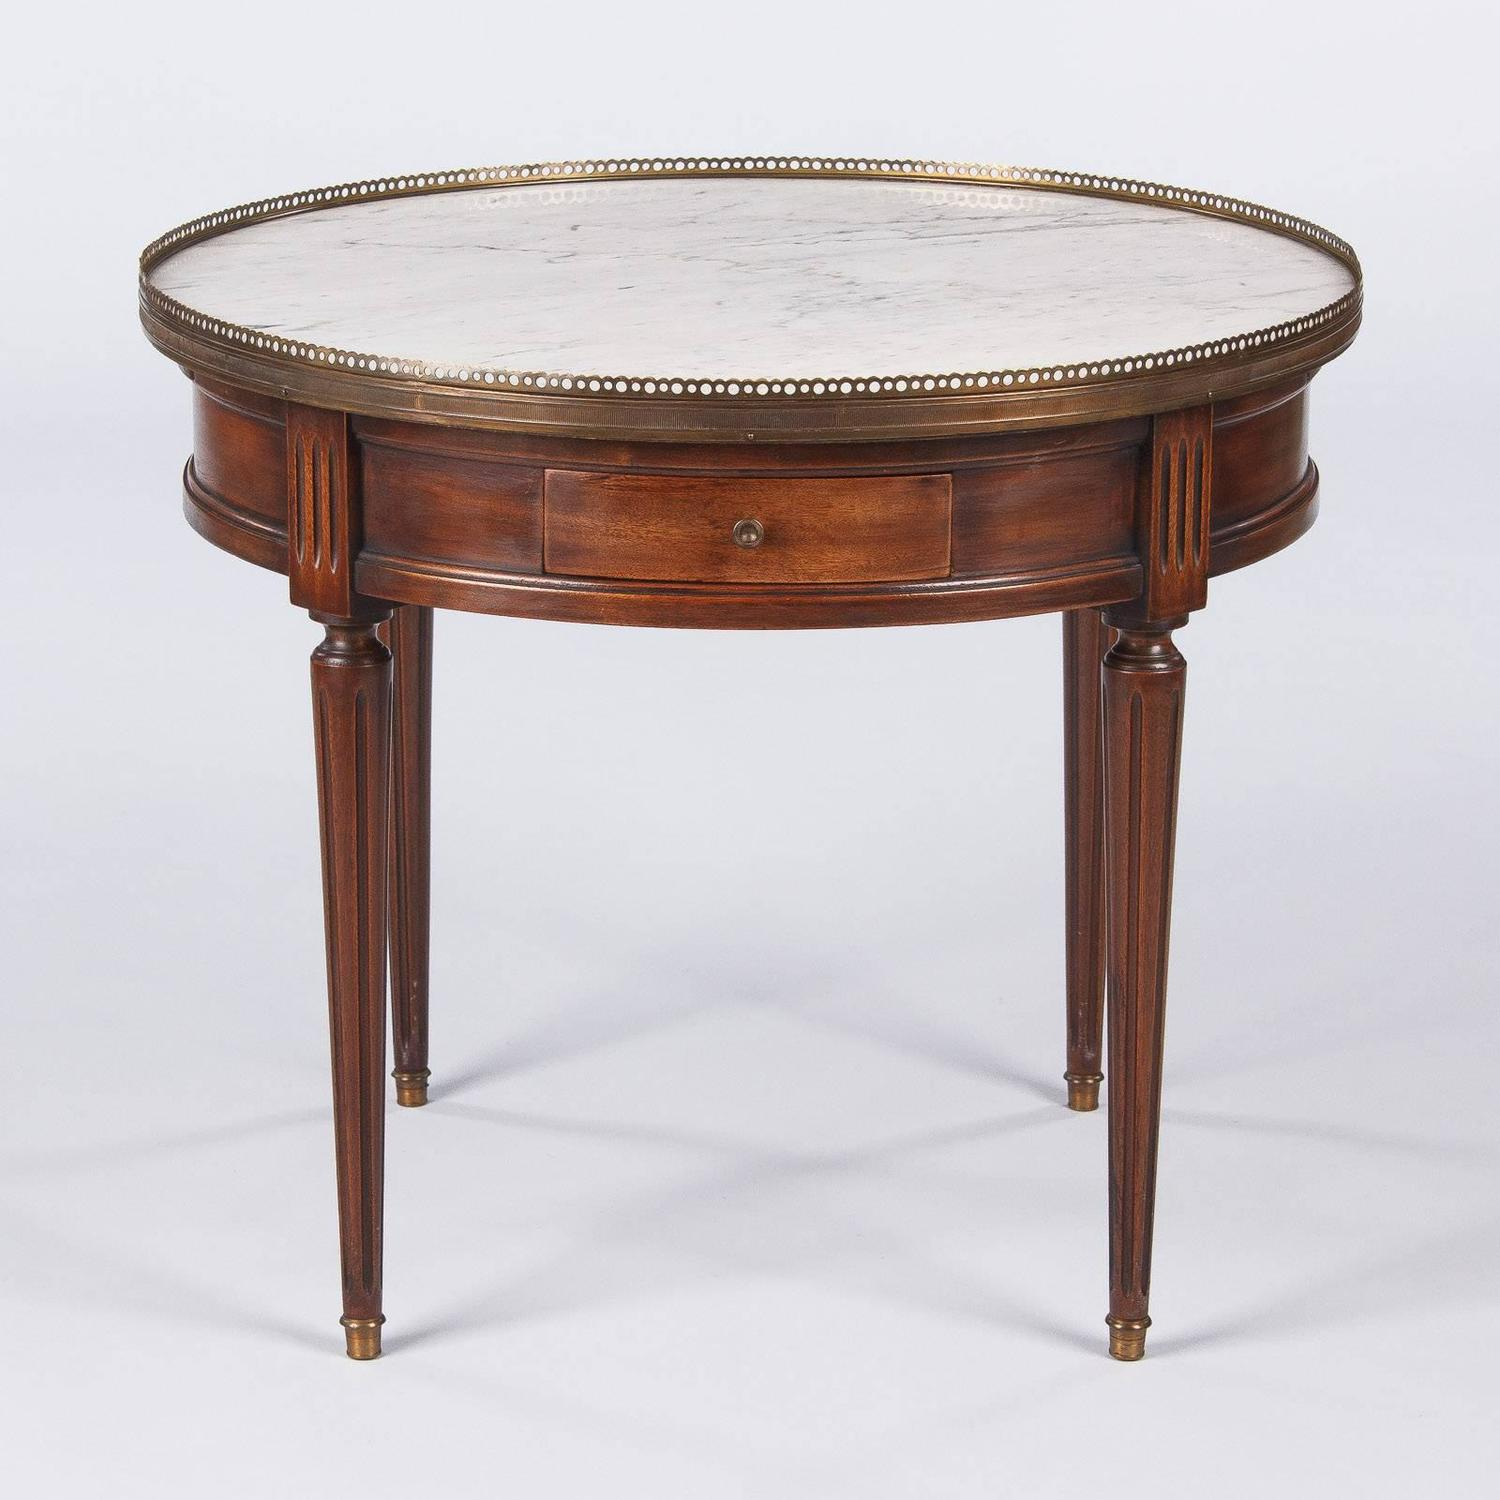 Louis Xvi Marble Coffee Table: Louis XVI Style Marble-Top Coffee Or Side Table, Early